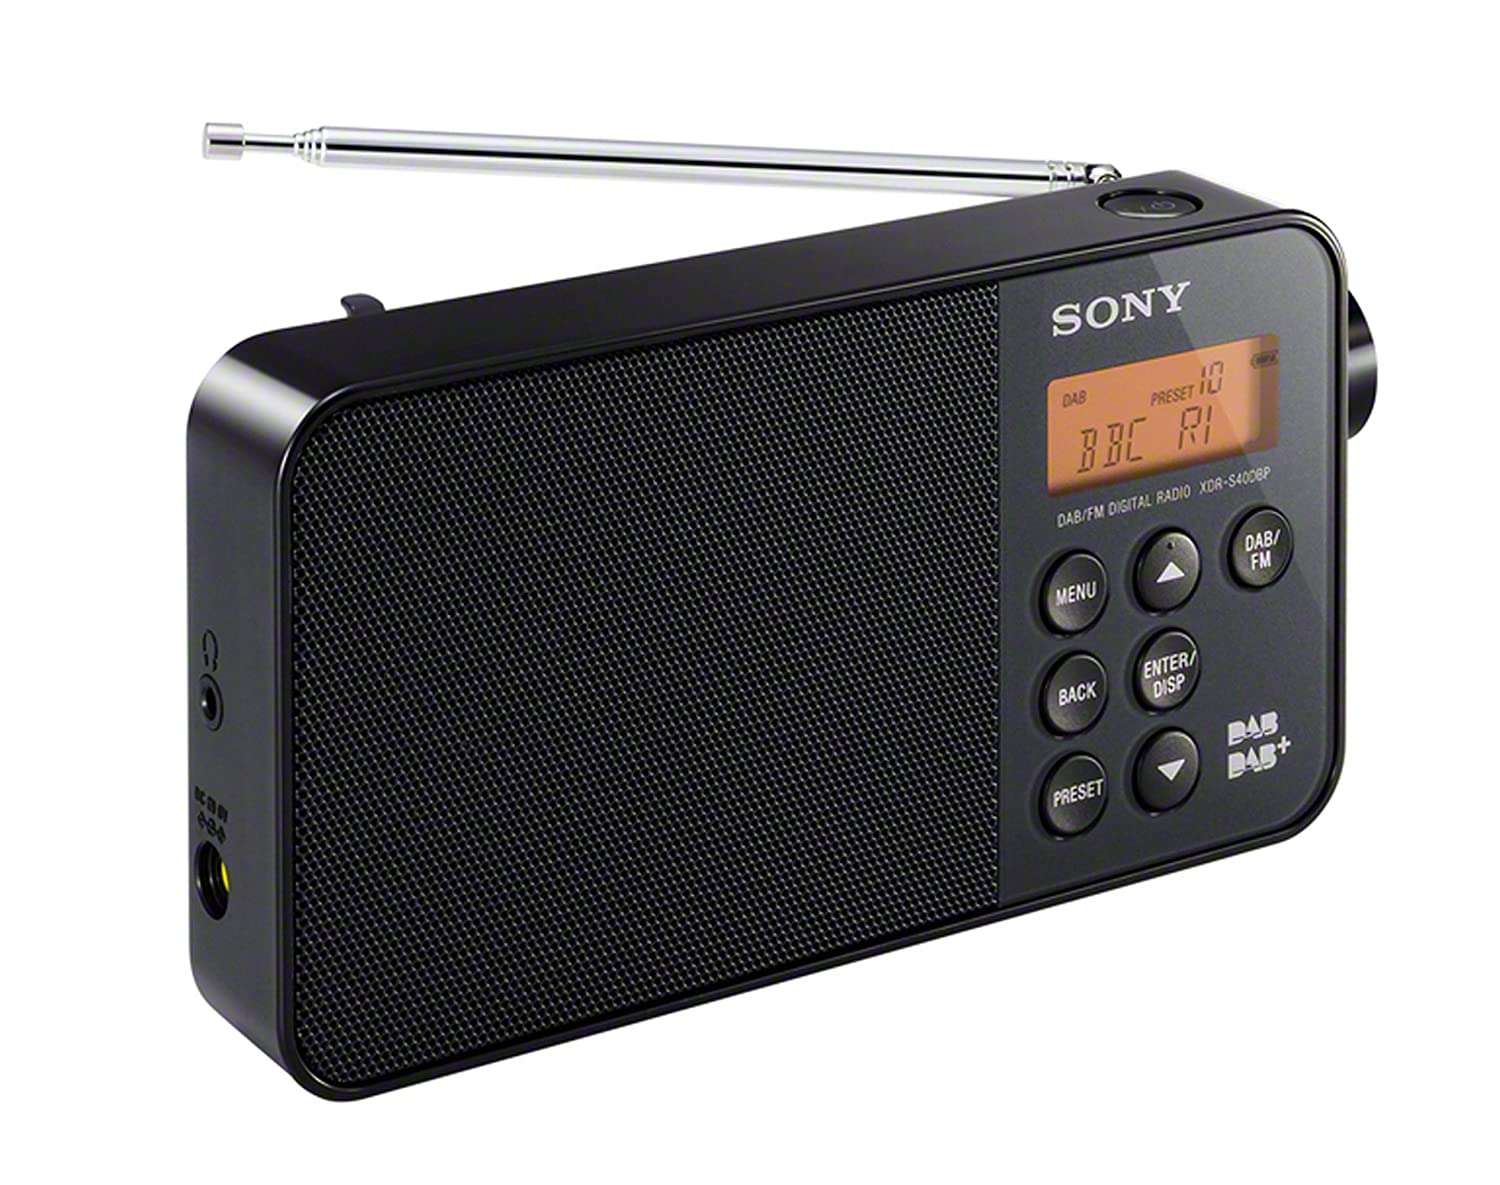 sony xdr s40 dab dab fm ultra compact portable digital radio black brand new ebay. Black Bedroom Furniture Sets. Home Design Ideas